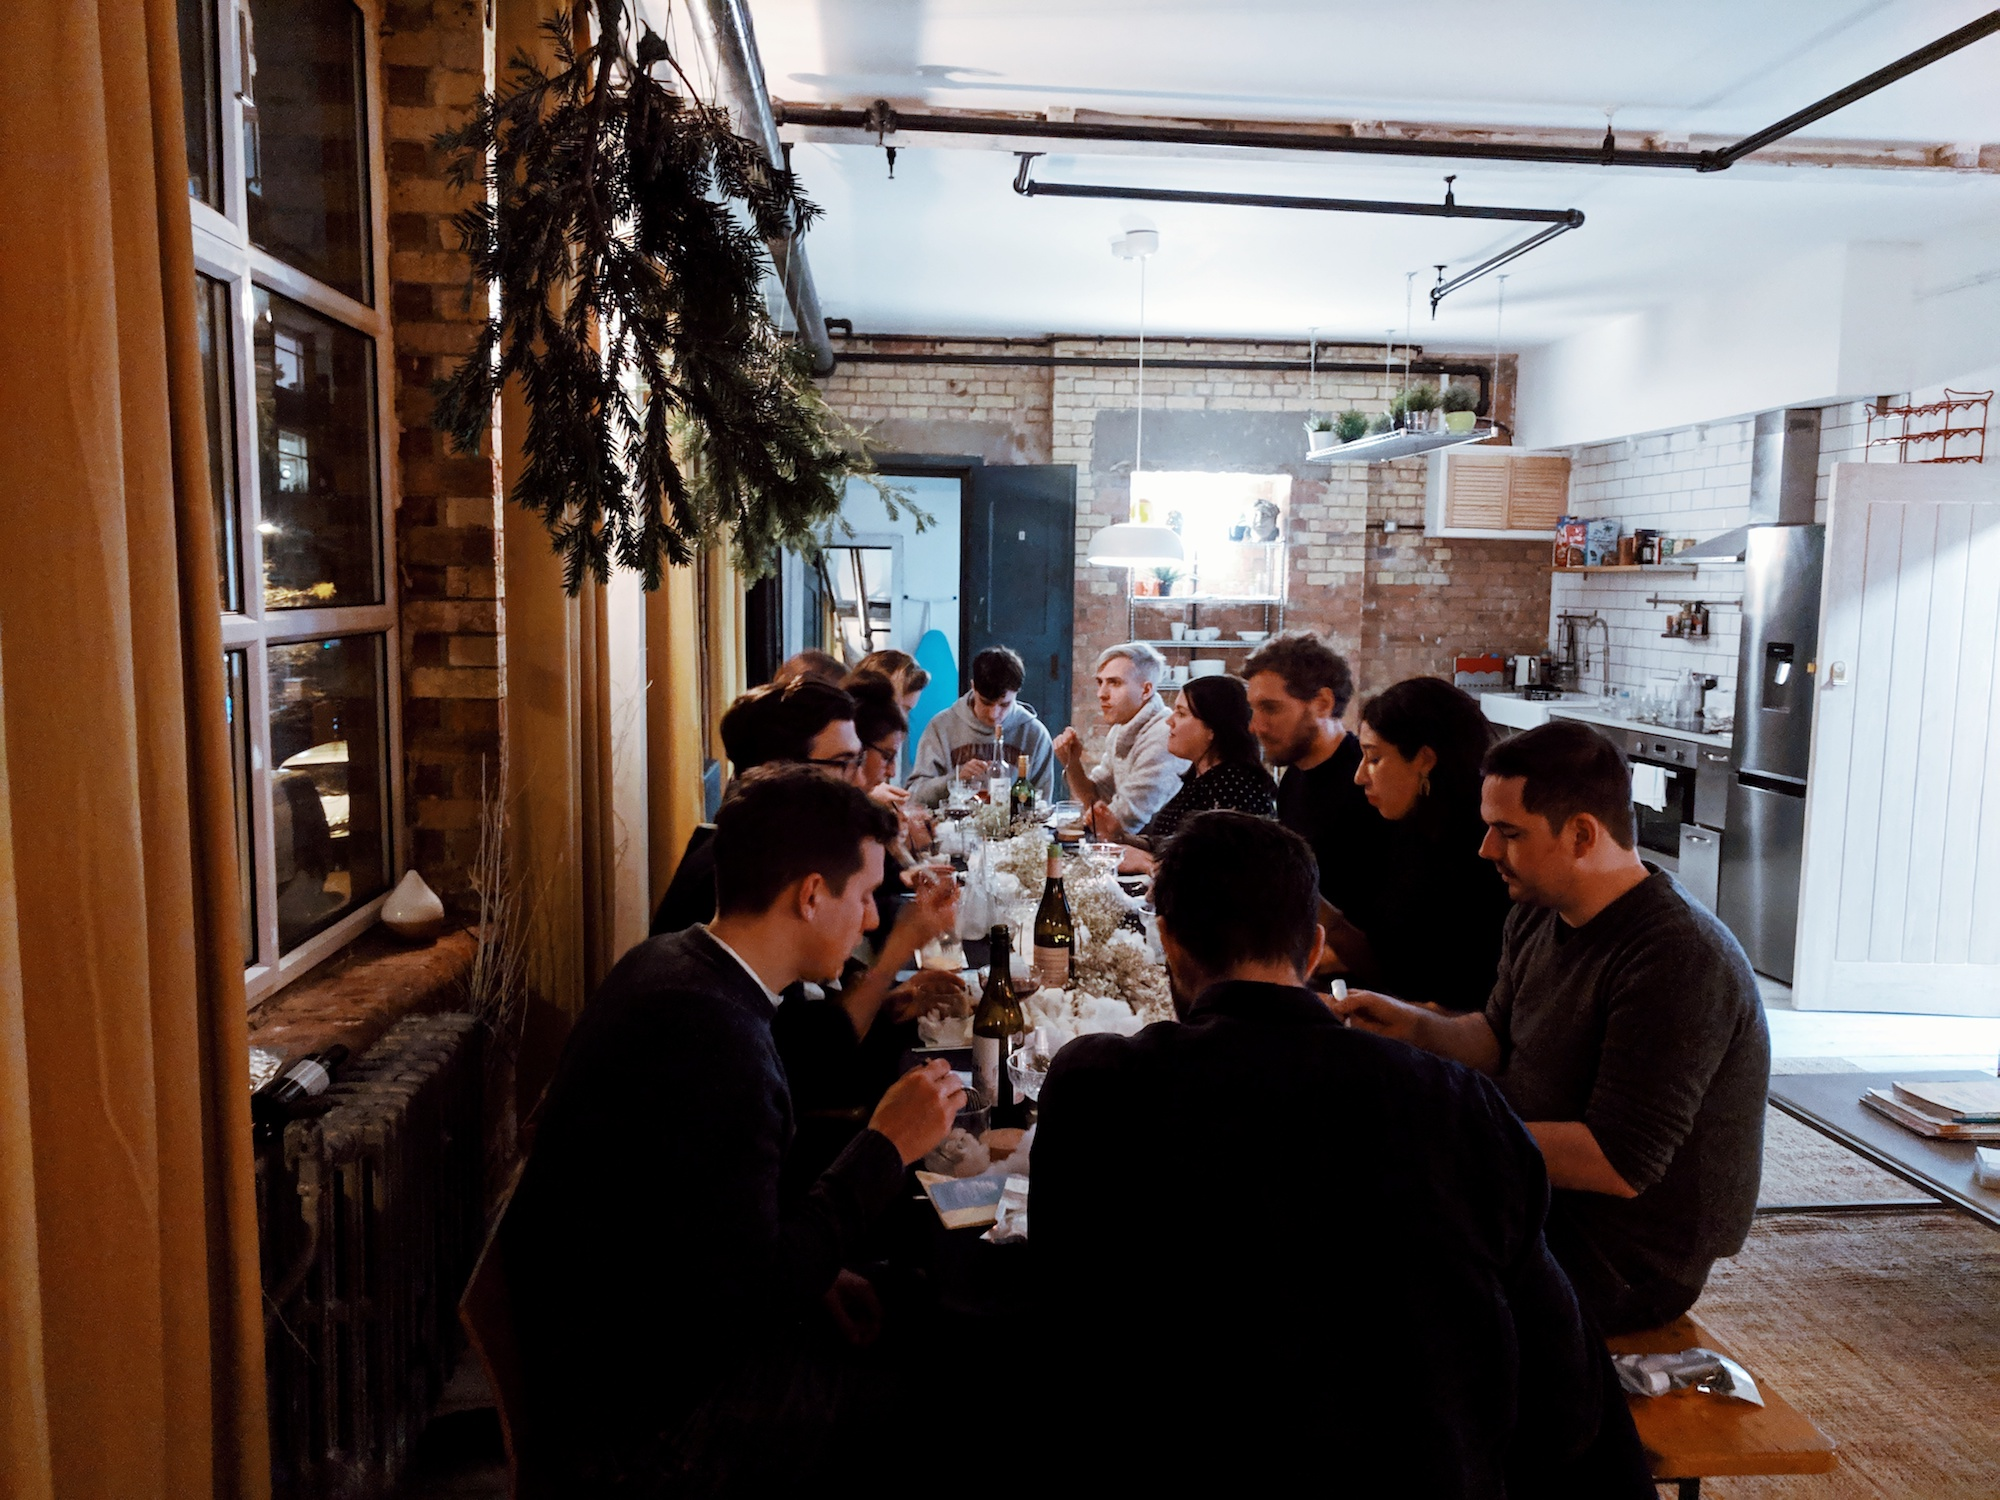 Secret Urban Suppers ~ Hackney, London: a Creative Melting-pot / Multisensory Supper Club in East London